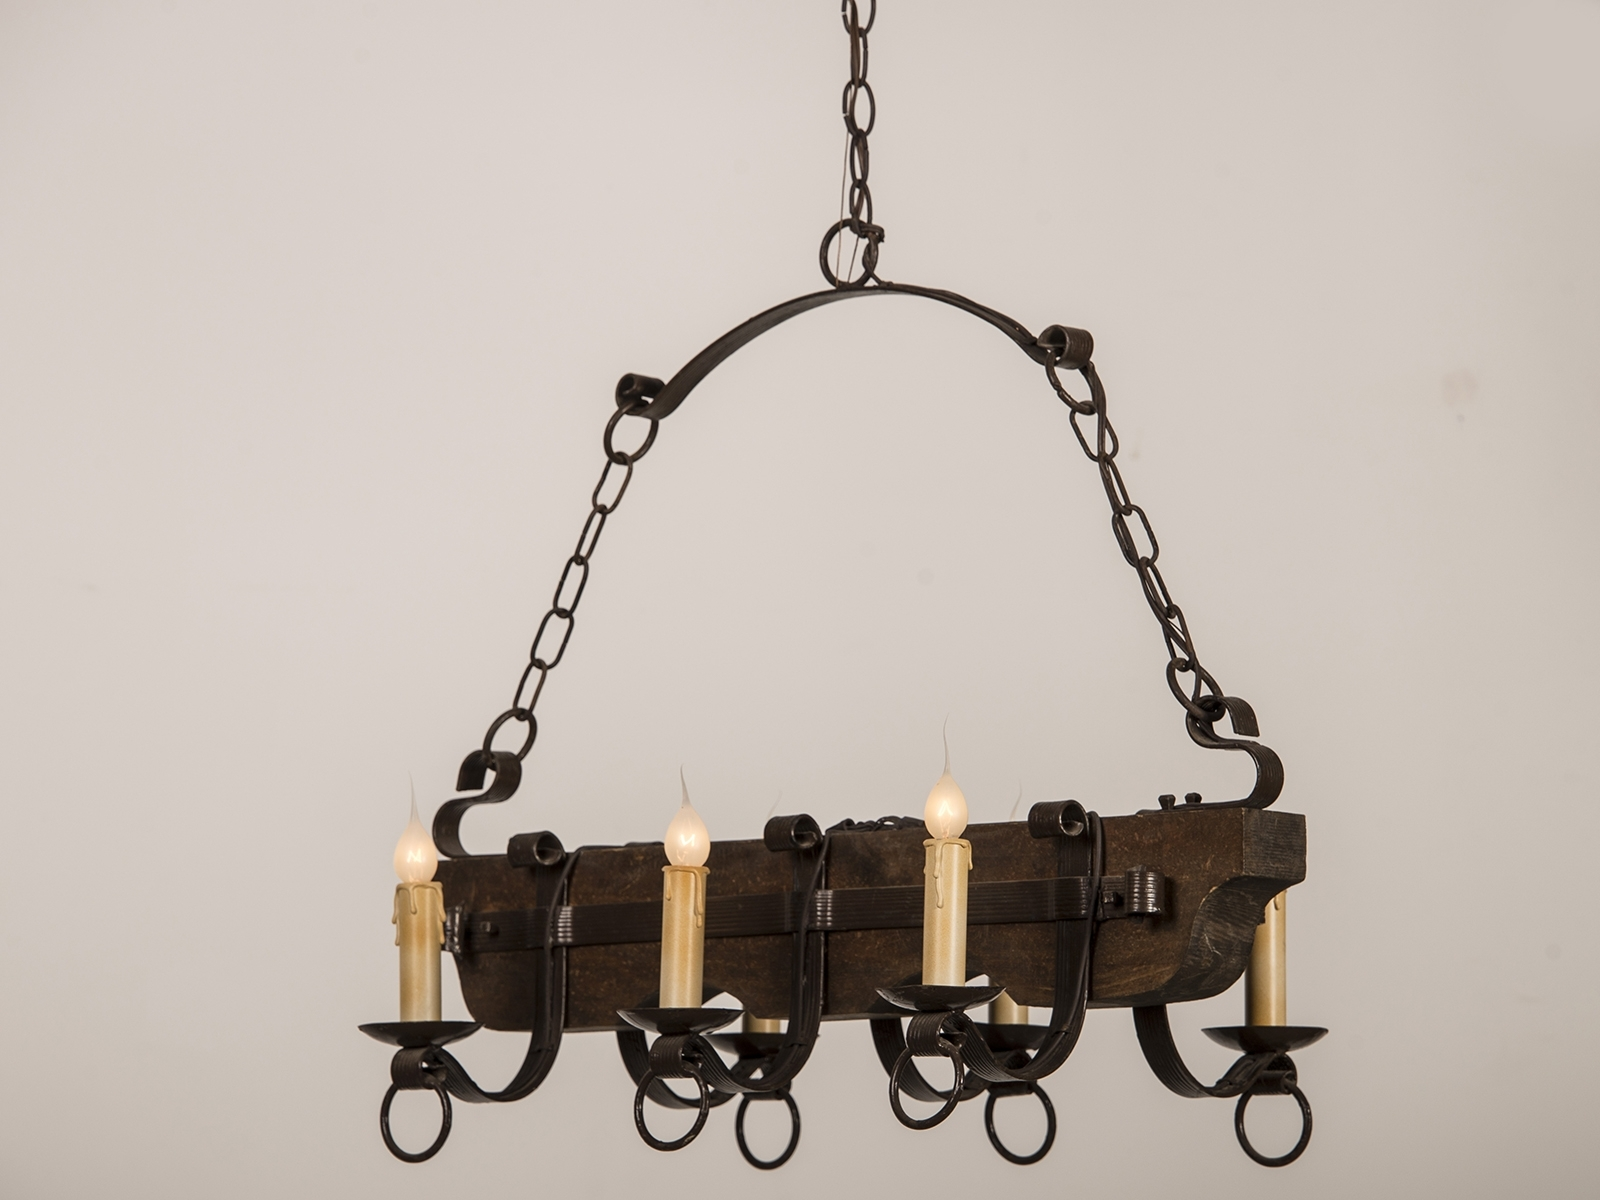 Vintage Wrought Iron Chandelier Regarding Well Known Old And Vintage Wood And Black Iron Chandelier With Candle Holder (View 14 of 20)